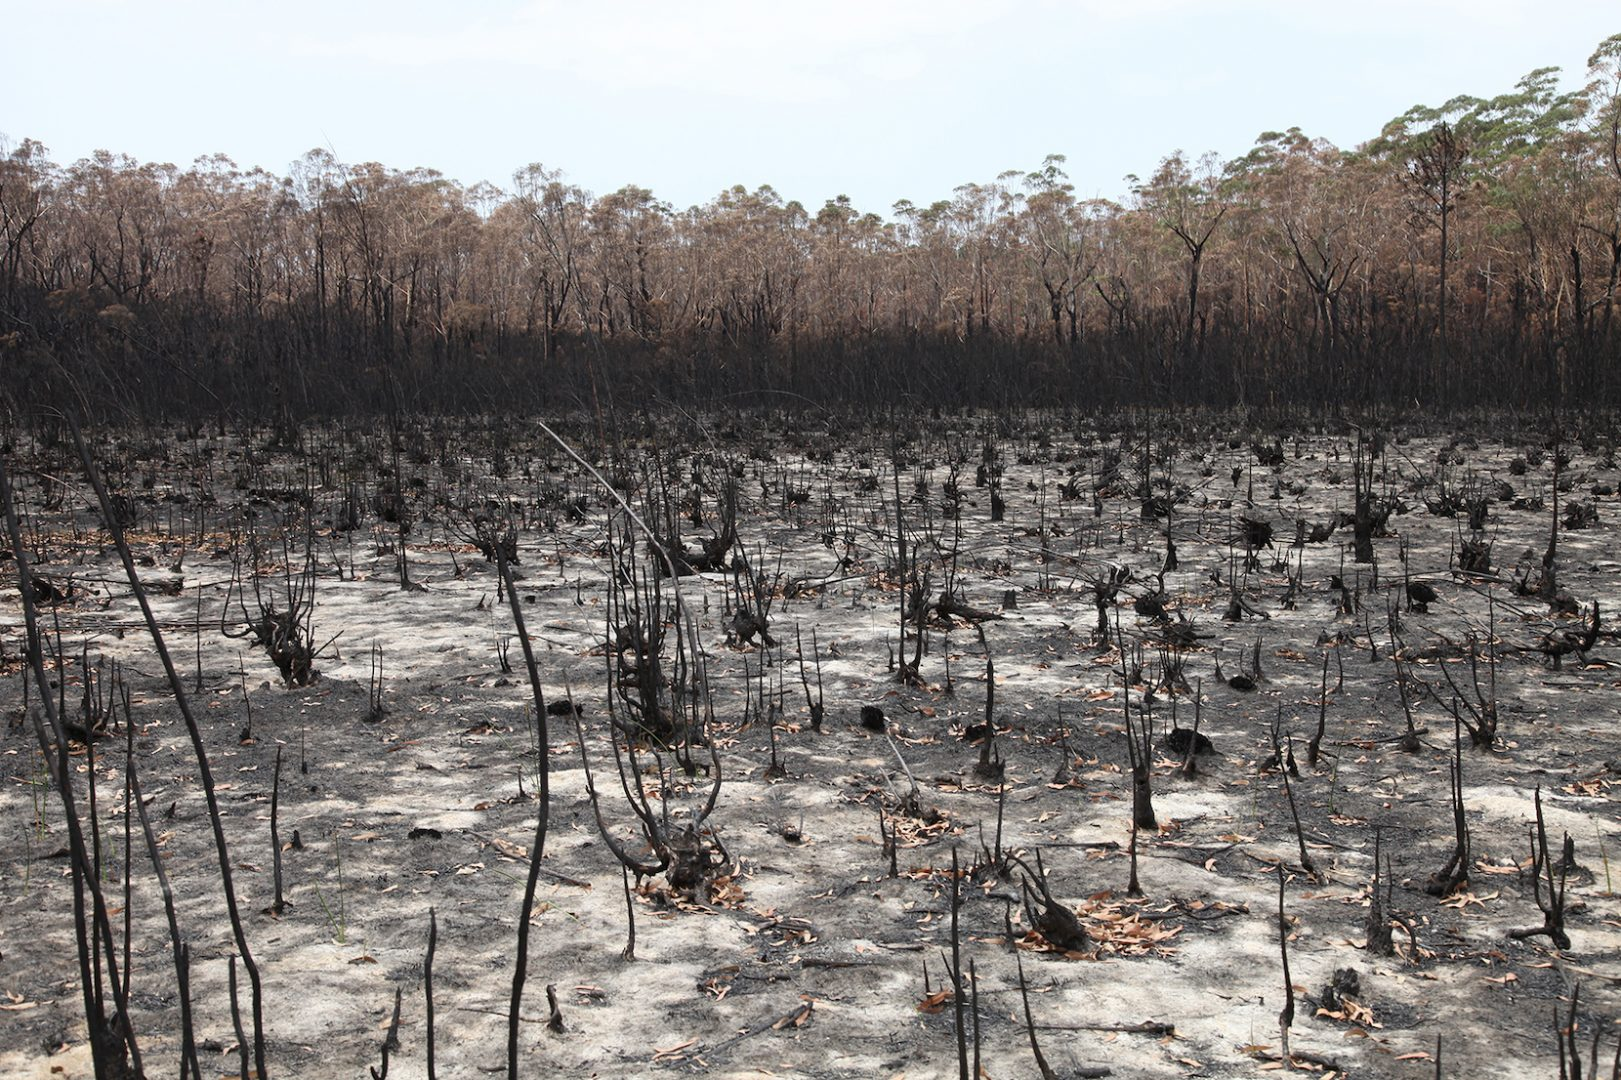 Estaurine Swamp with burnt forest in background, photo credit: Hayden Fowler